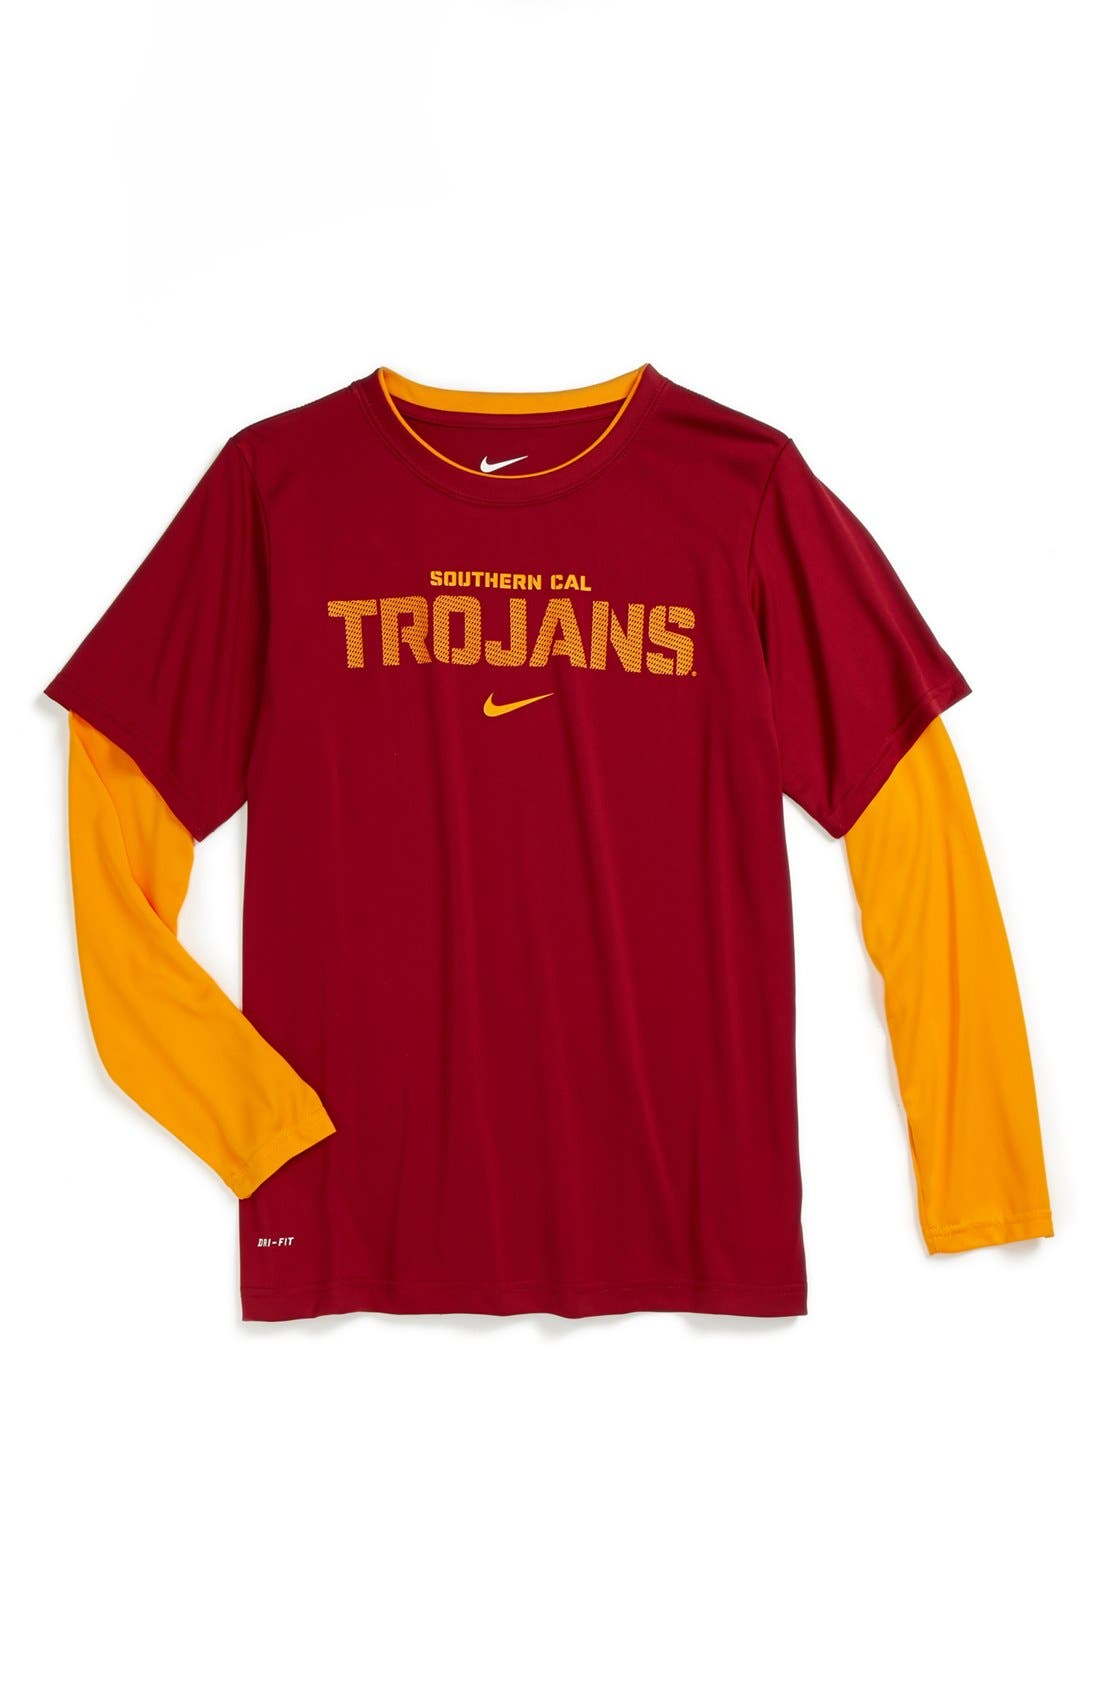 Alternate Image 1 Selected - Nike 'Southern California Trojans' Dri-FIT Layered Sleeve Sport T-Shirt (Big Boys)